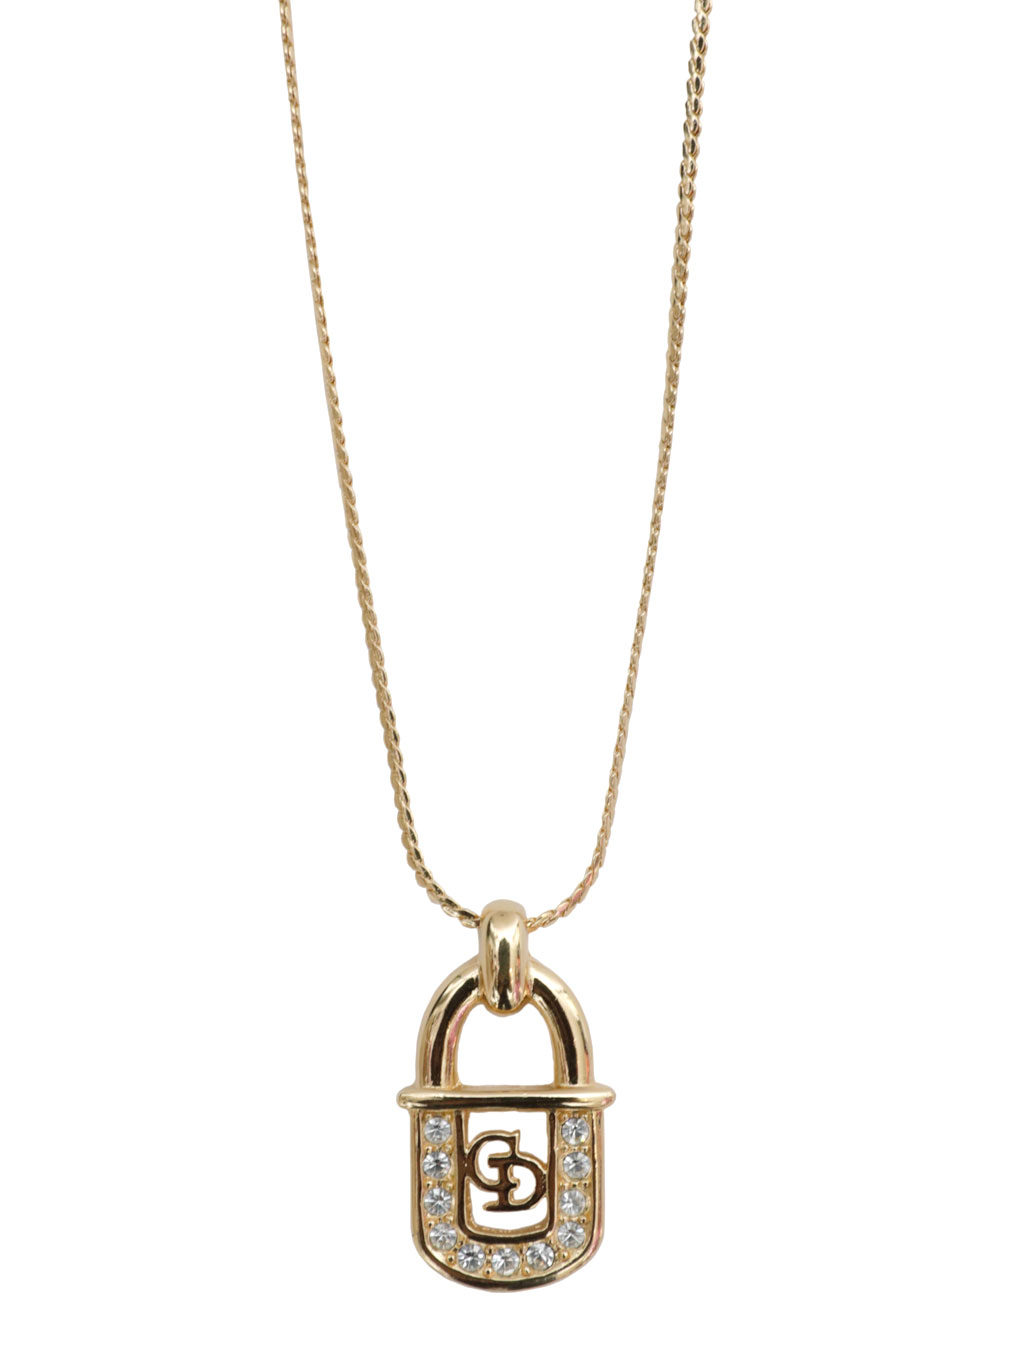 DIOR CD LOGO KEY NECKLACE